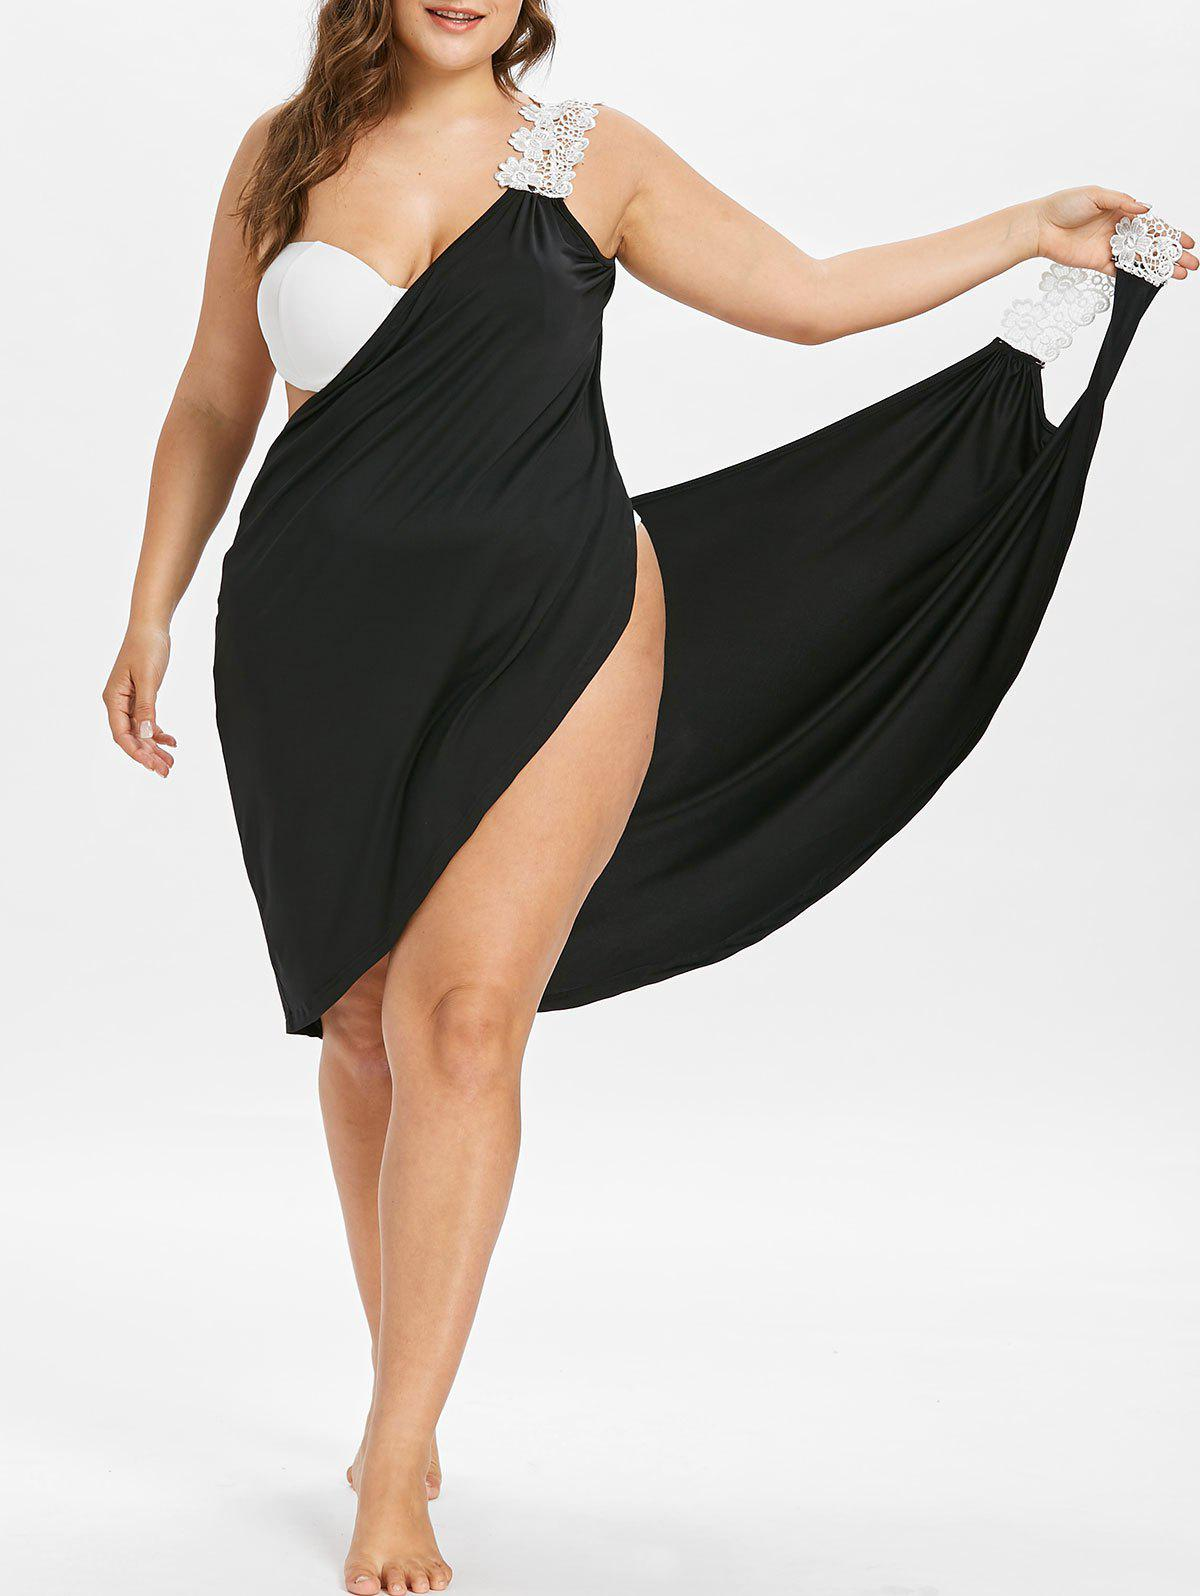 Plus Size Beach Cover-up Wrap Dress - BLACK 4X